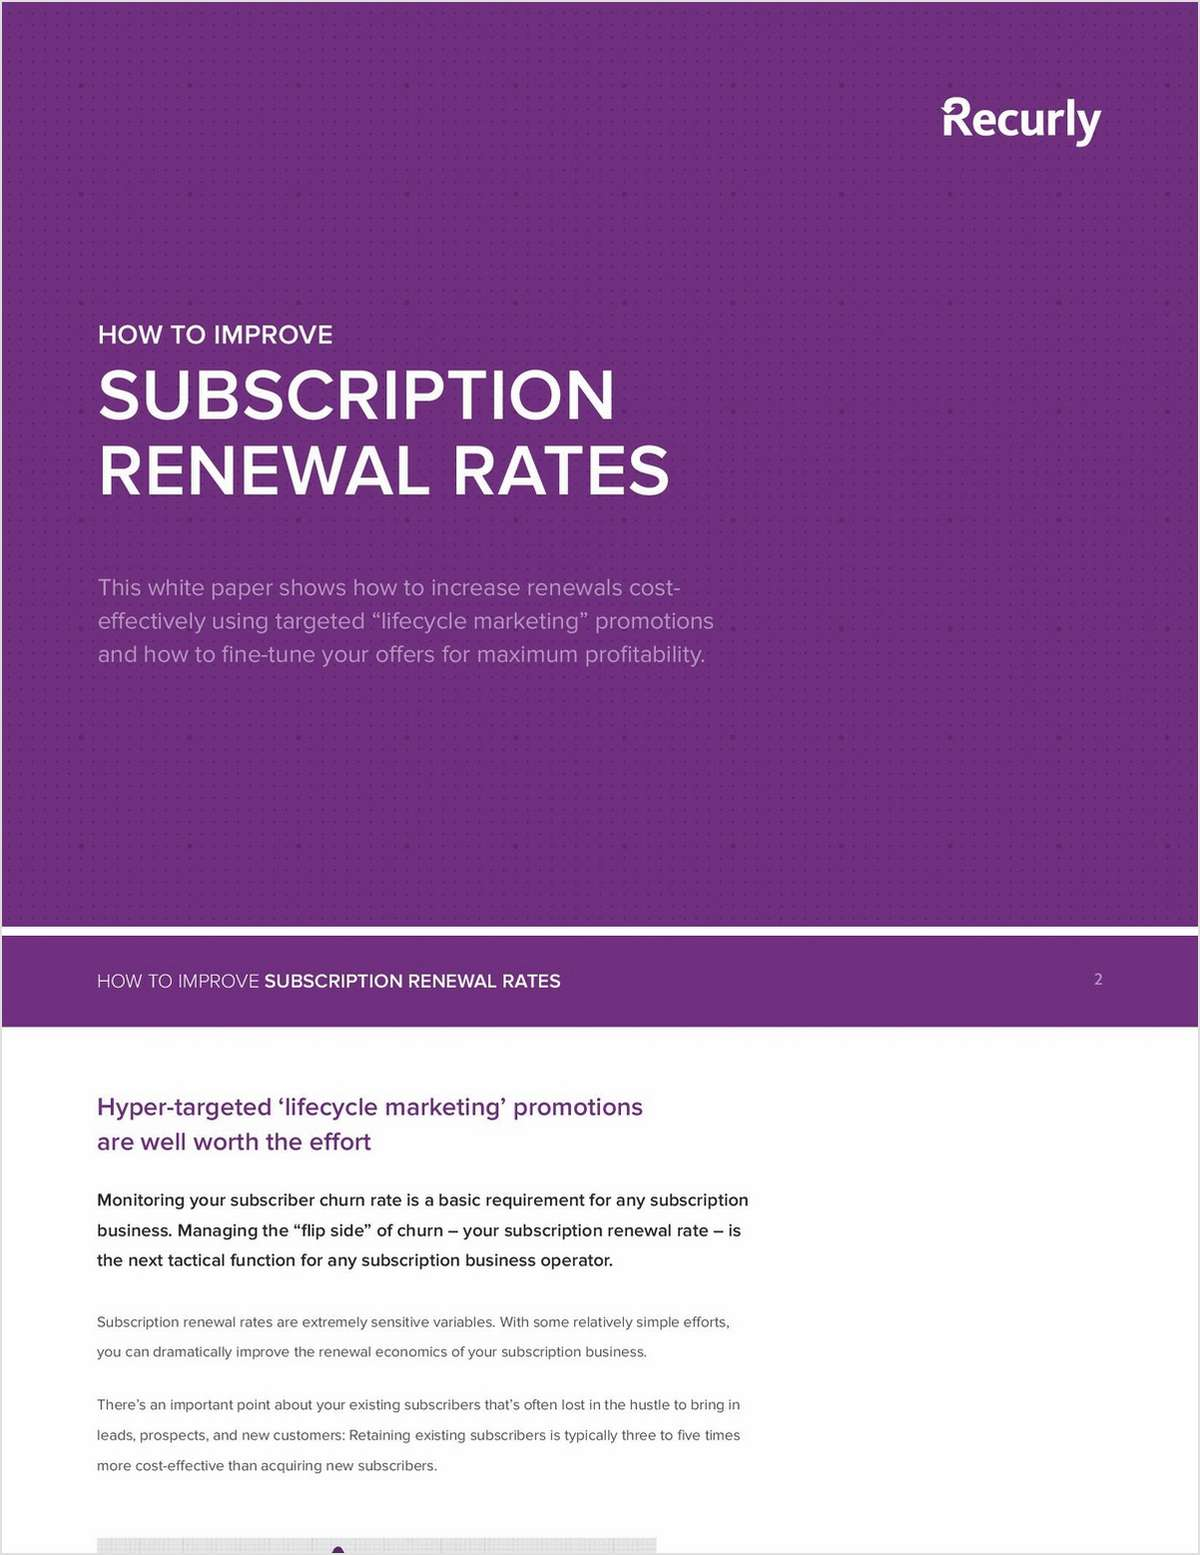 How to Improve Subscription Renewal Rates